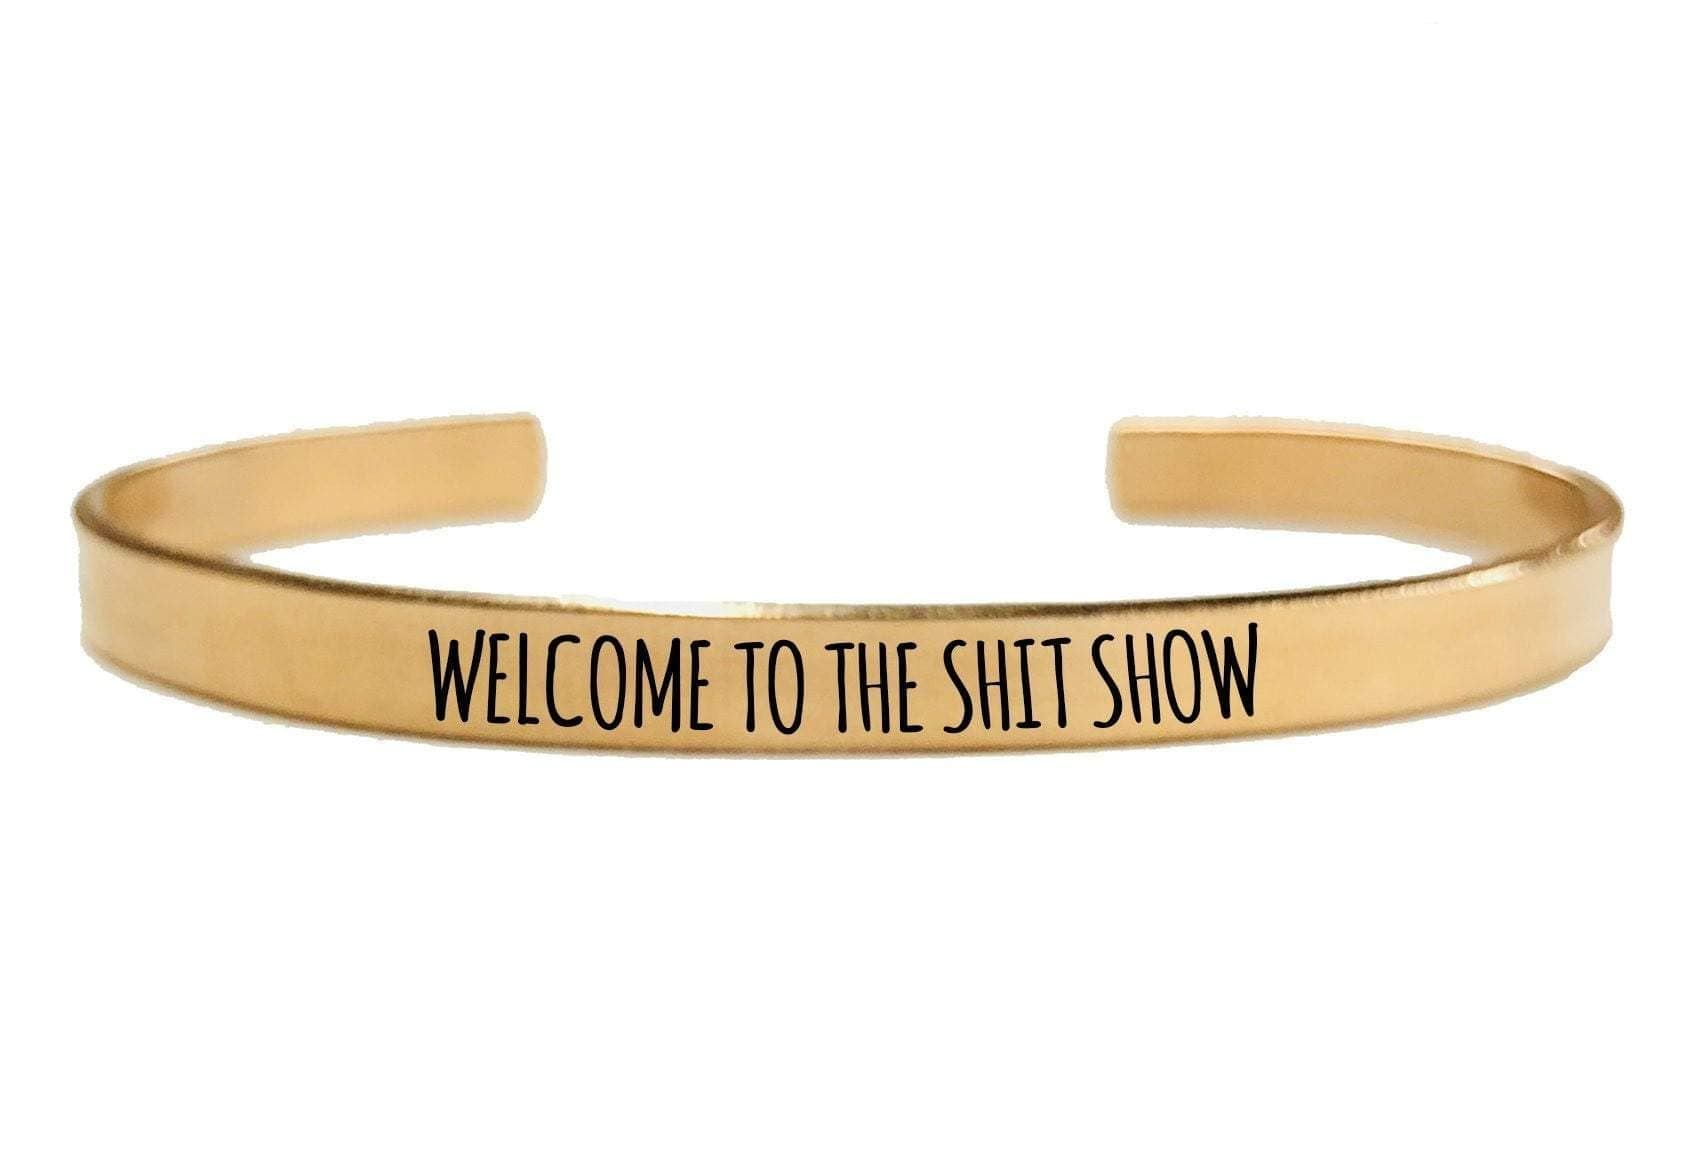 WELCOME TO THE SHIT SHOW CUFF BRACELET